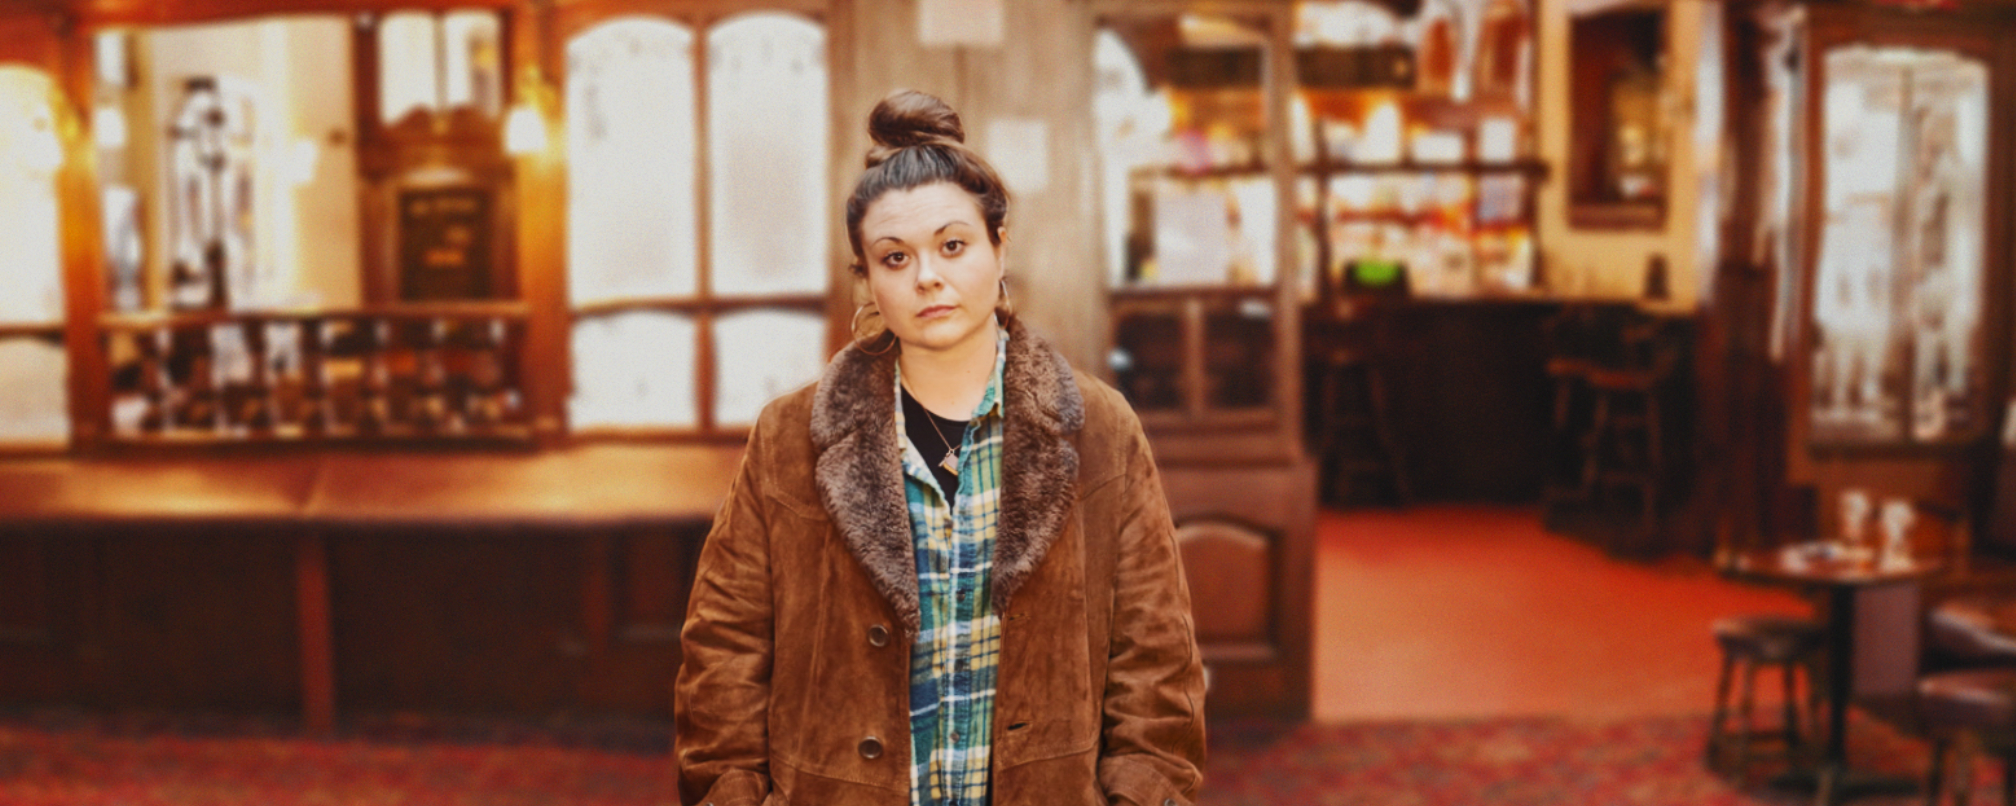 Woman in brown coat standing in the middle of an empty Pub